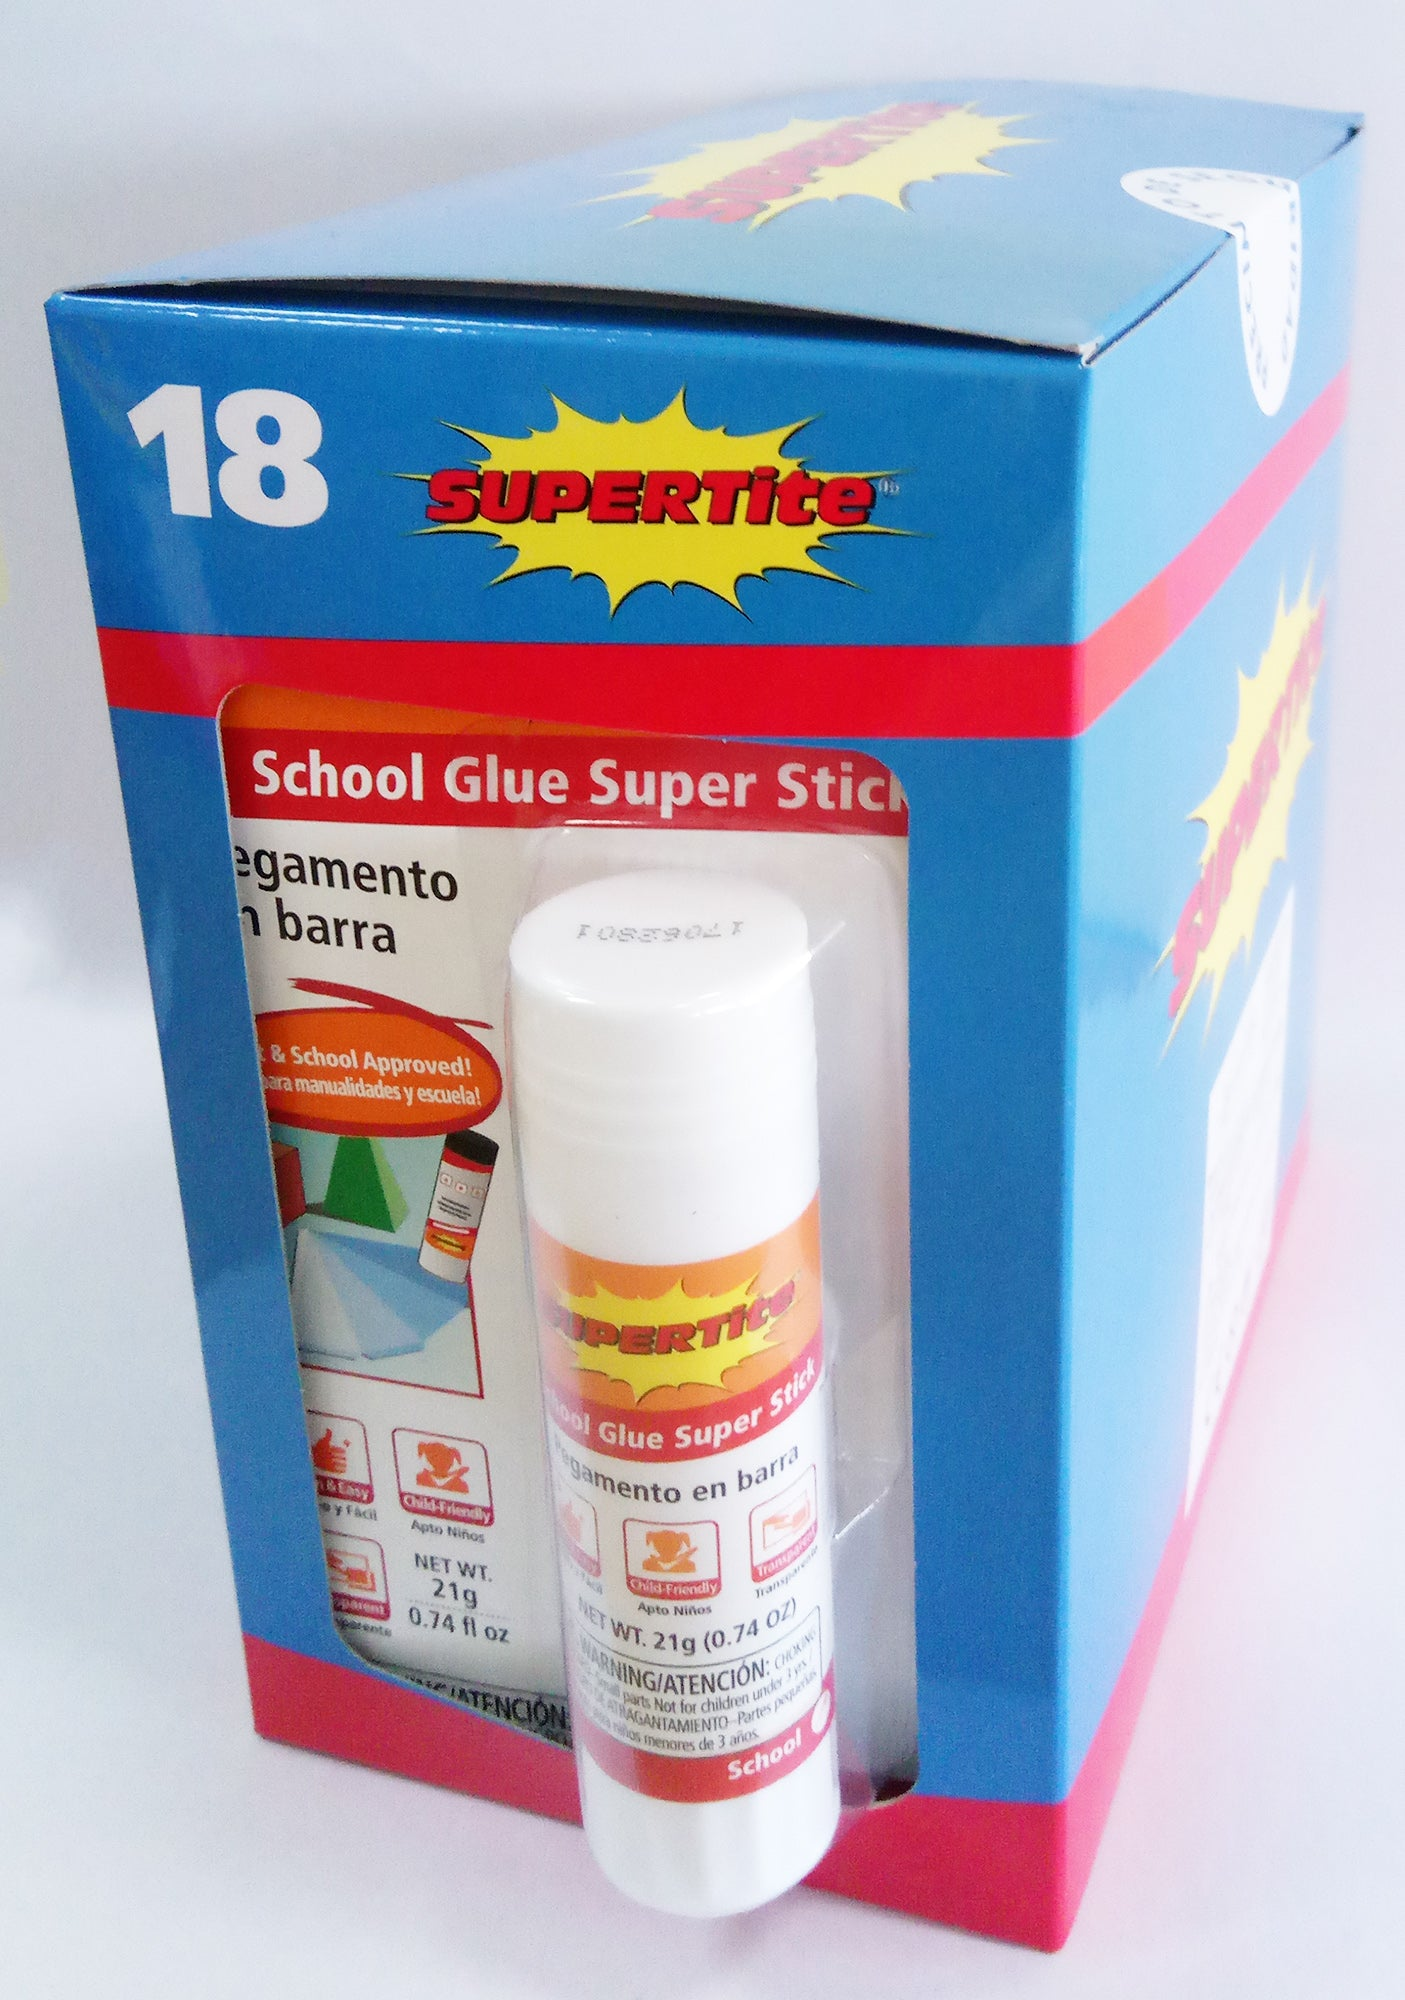 Ref-1118 Supertite SCHOOL GLUE SUPER STICK (Craft & School Approved!)- 21g(.74oz)